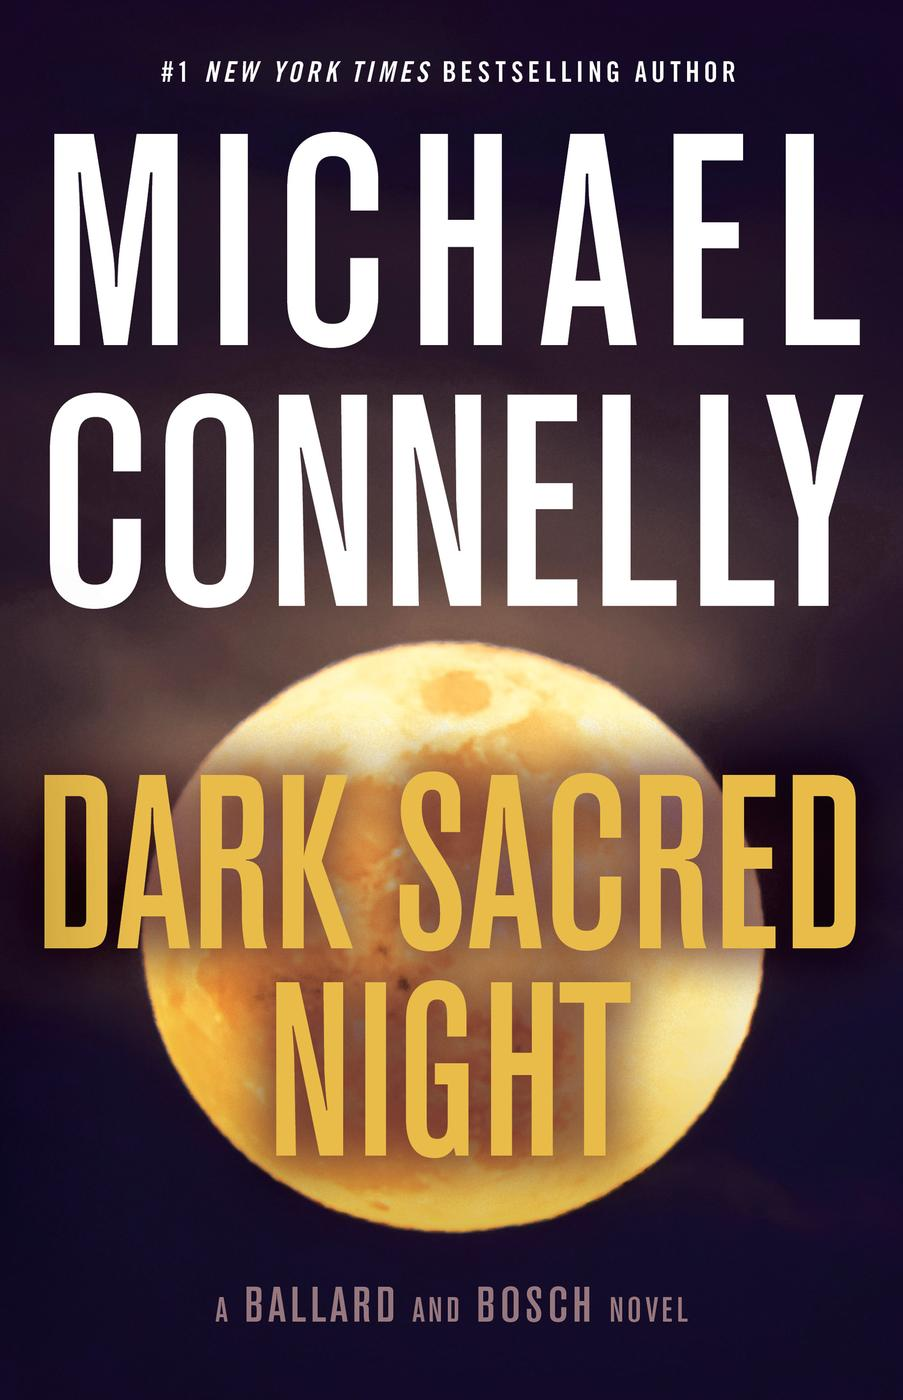 Dark Sacred Night (A Ballard and Bosch Novel) - Michael Connelly [kindle] [mobi]